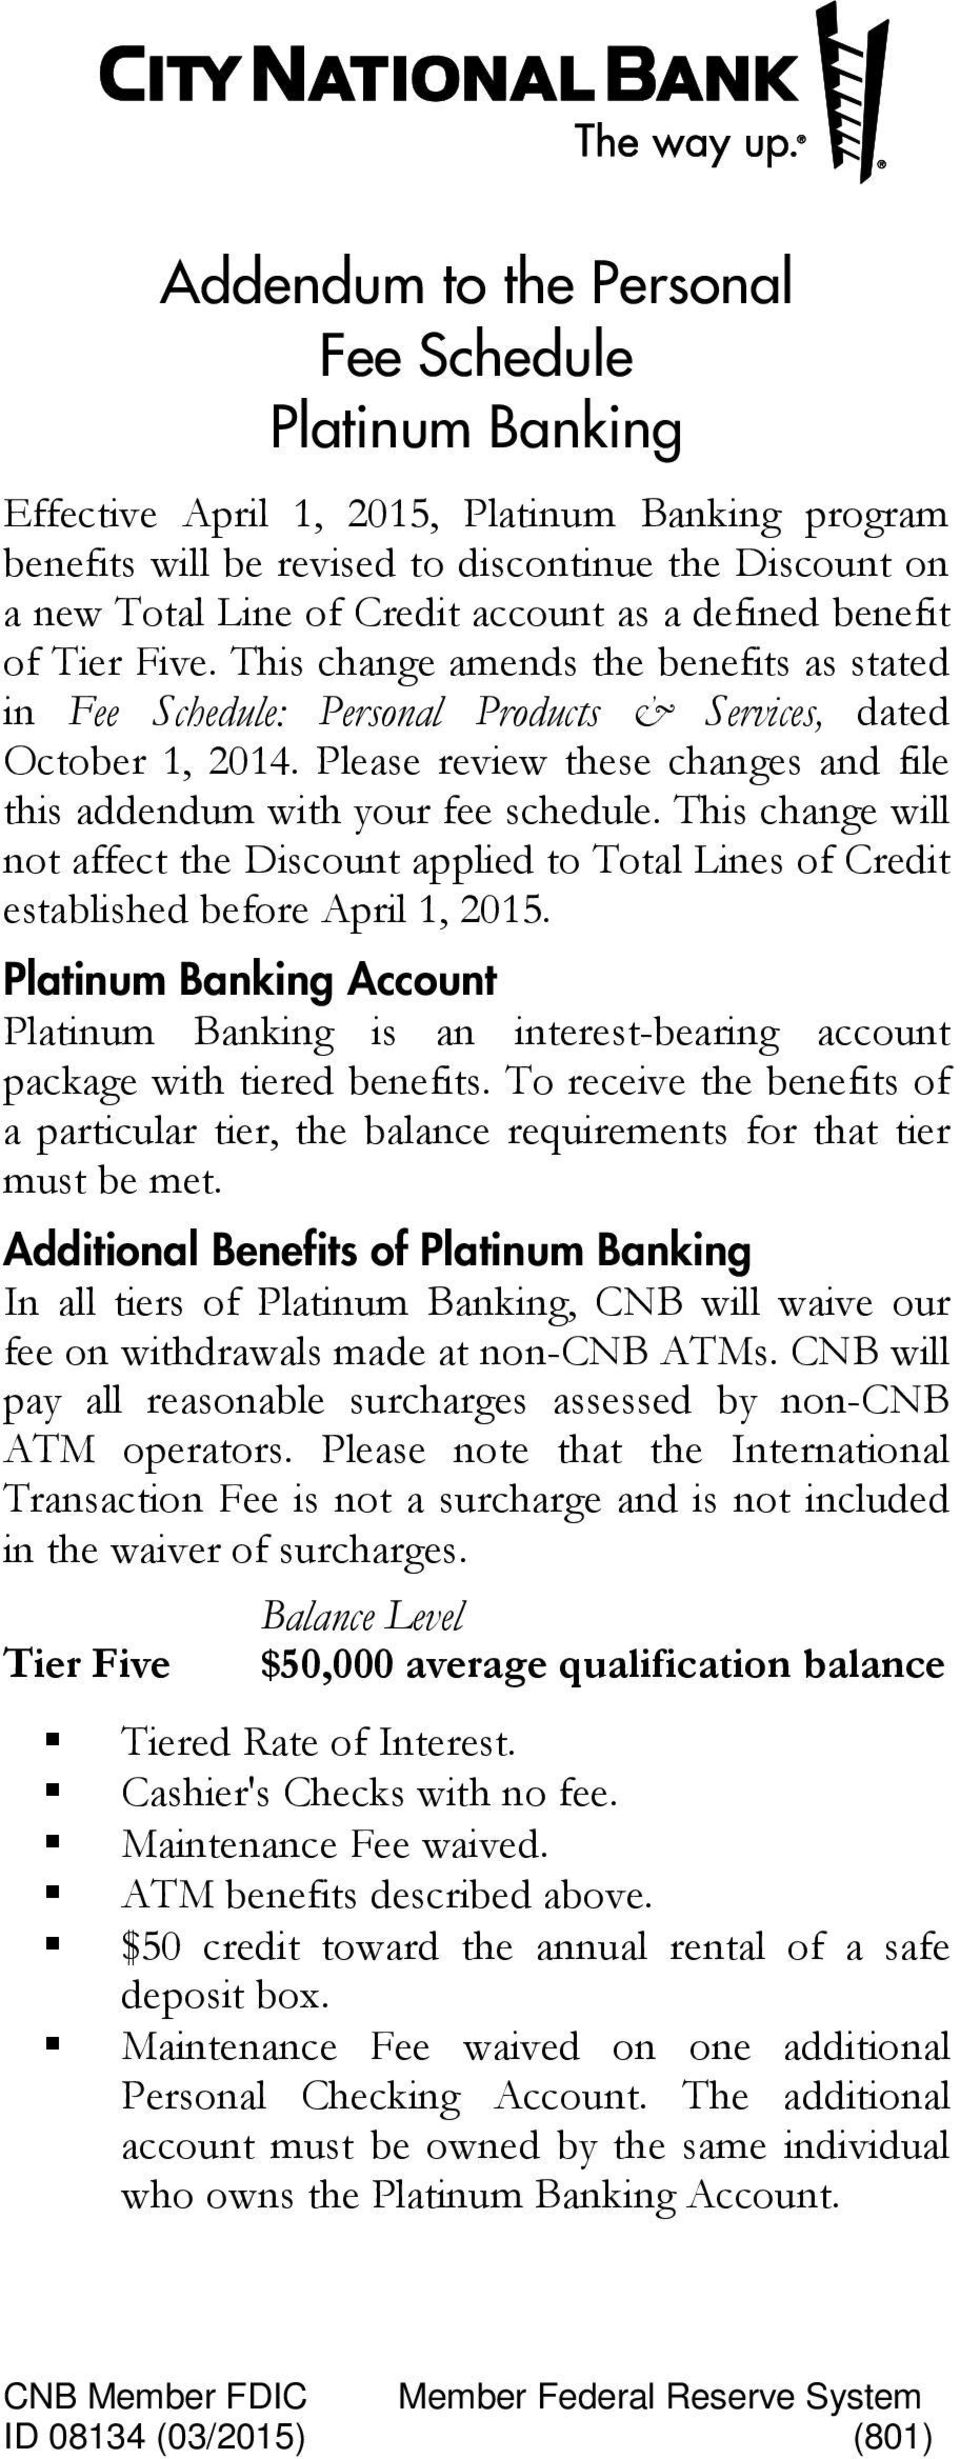 Please review these changes and file this addendum with your fee schedule. This change will not affect the Discount applied to Total Lines of Credit established before April 1, 2015.